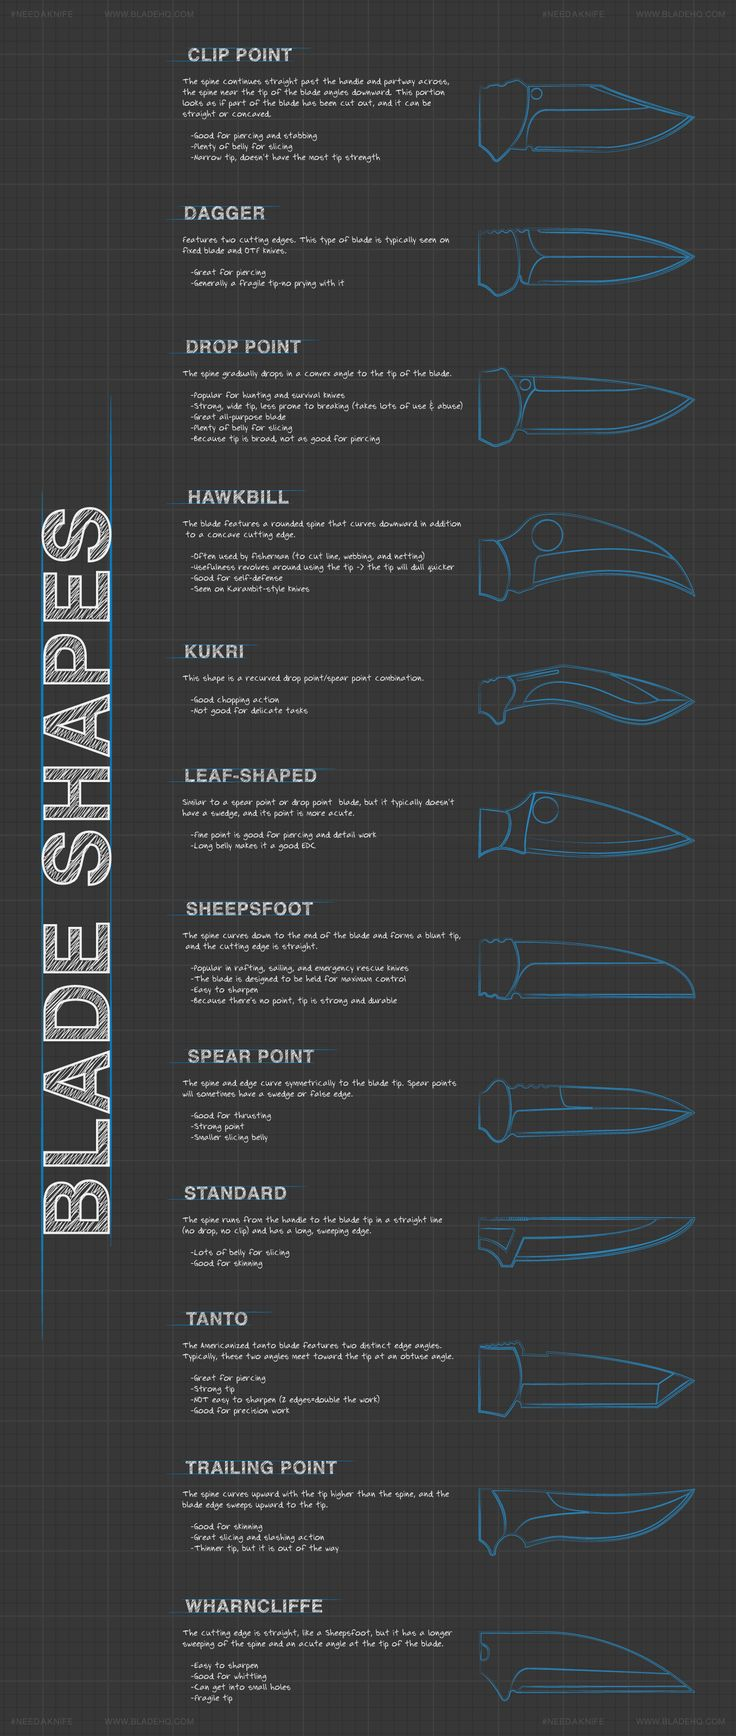 This covers various blade types/styles so you can make sure your next knife is the right one for the job.